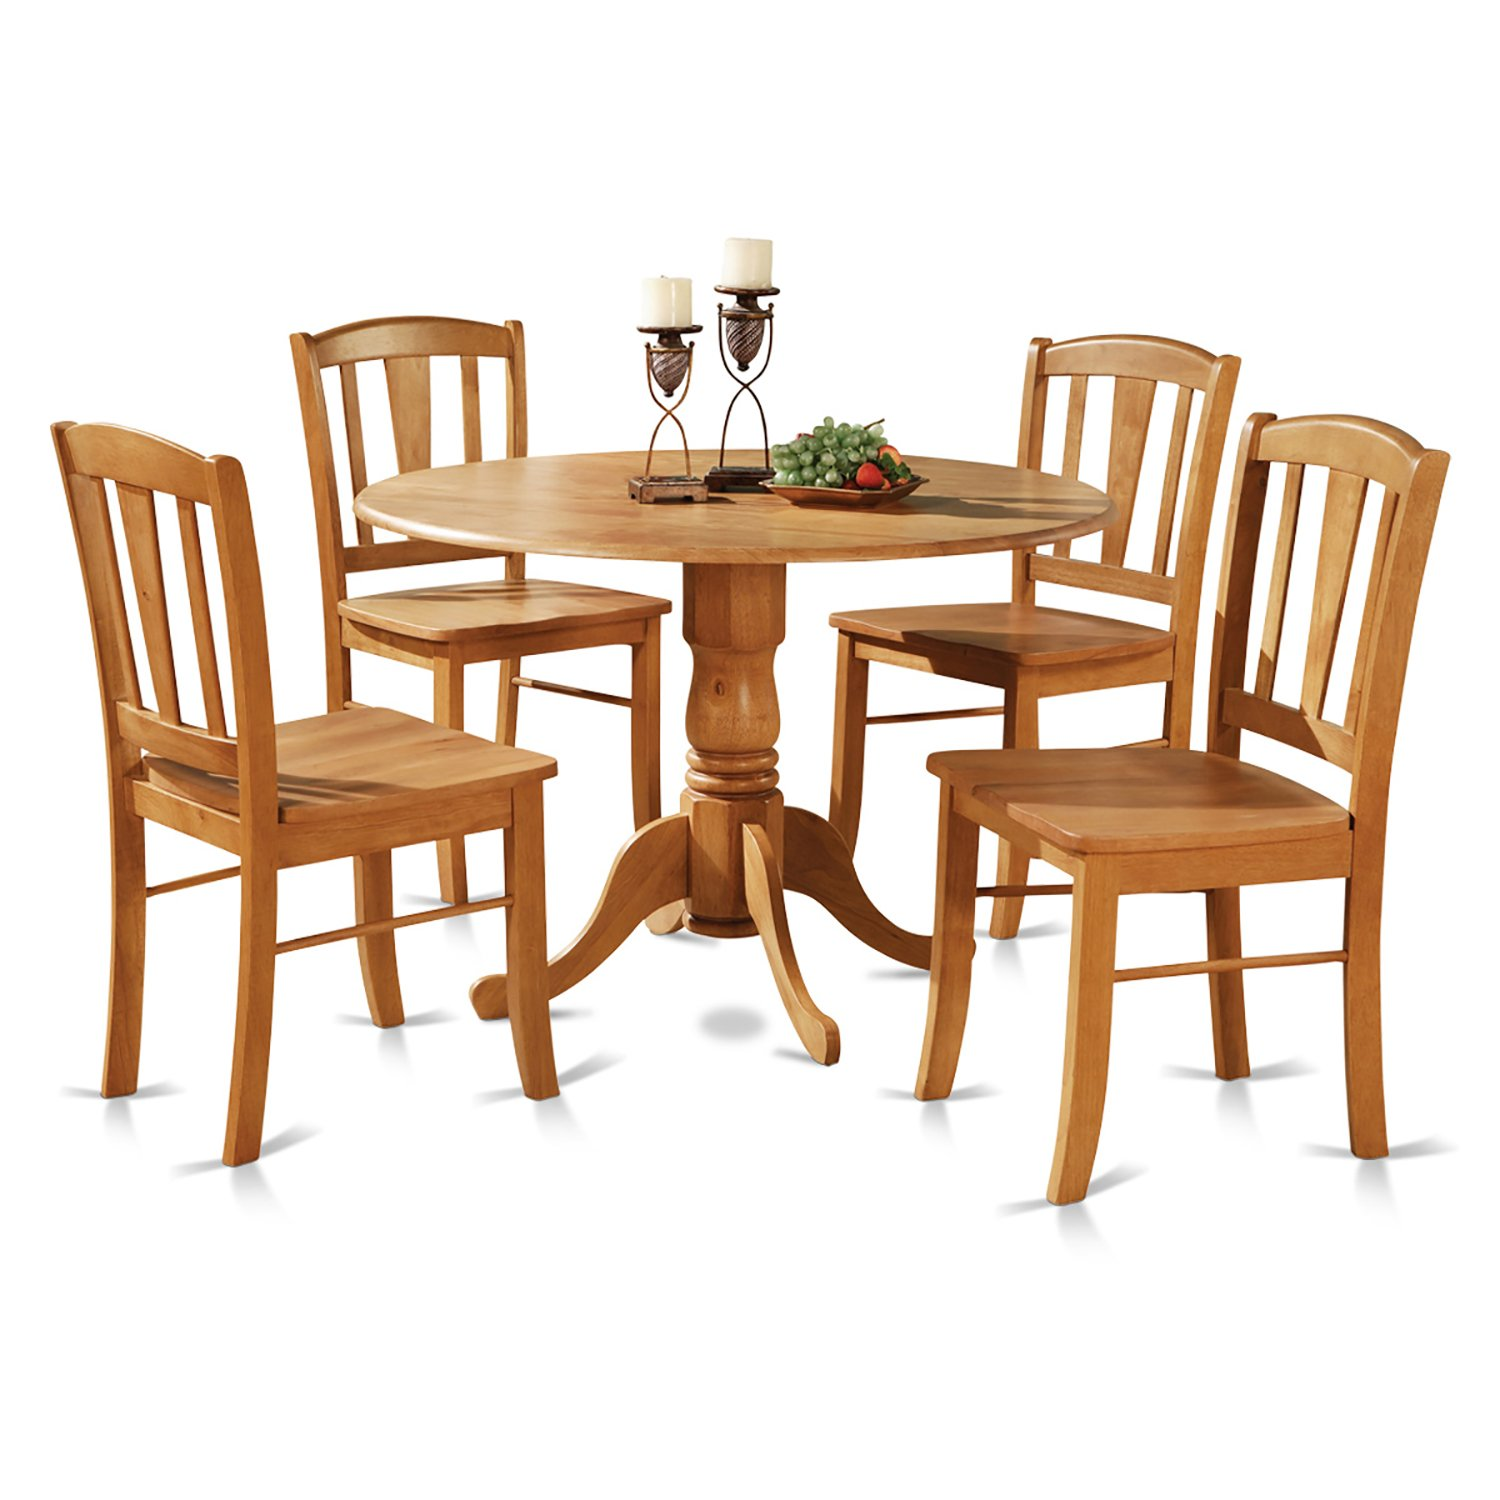 East West Furniture DLIN5-OAK-W 5-Piece Round Kitchen Table and 4 Dinette Chairs Set - Oak Finish